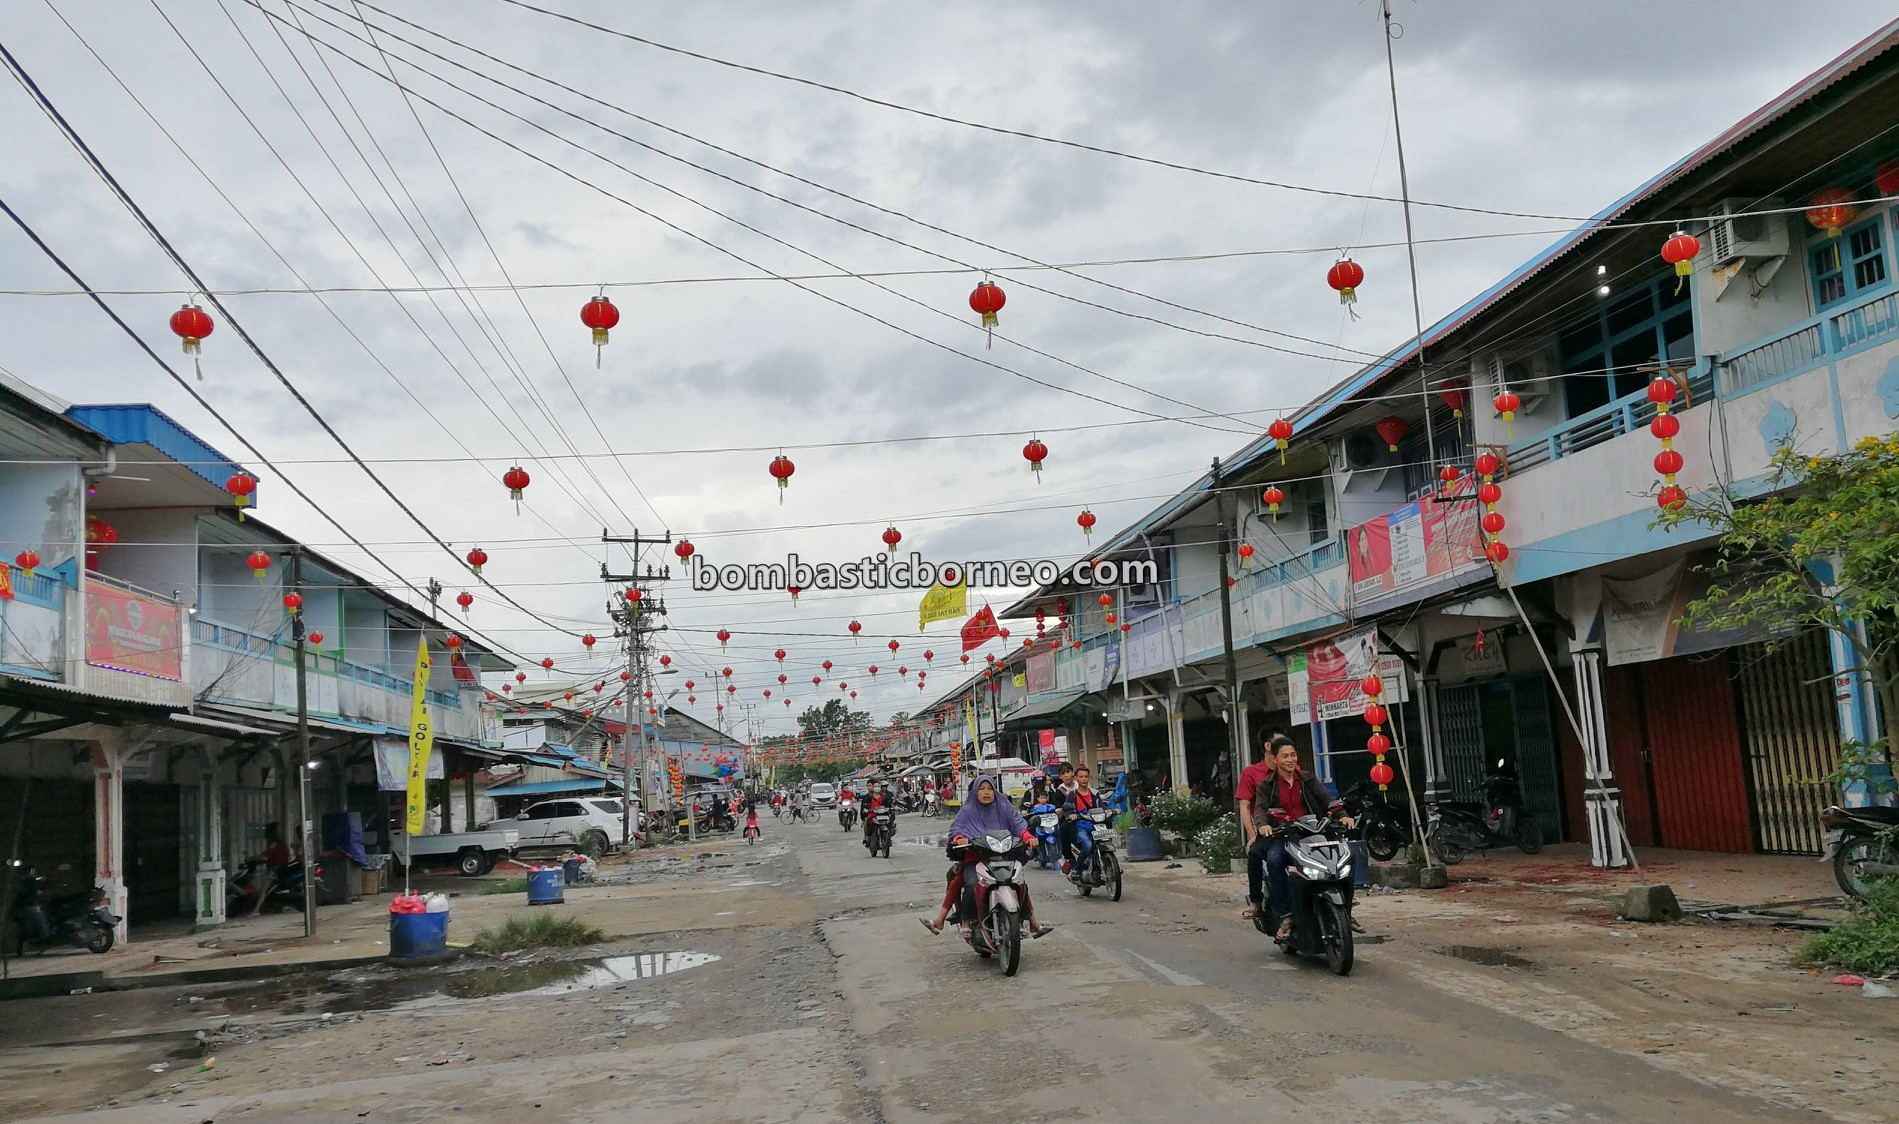 Tahun Baru Imlek, Chinese New Year, Kampung cina, Obyek wisata, Tourism, travel guide, backpackers, destination, 穿越婆罗洲游踪, 印尼西加里曼丹, 三发三条港